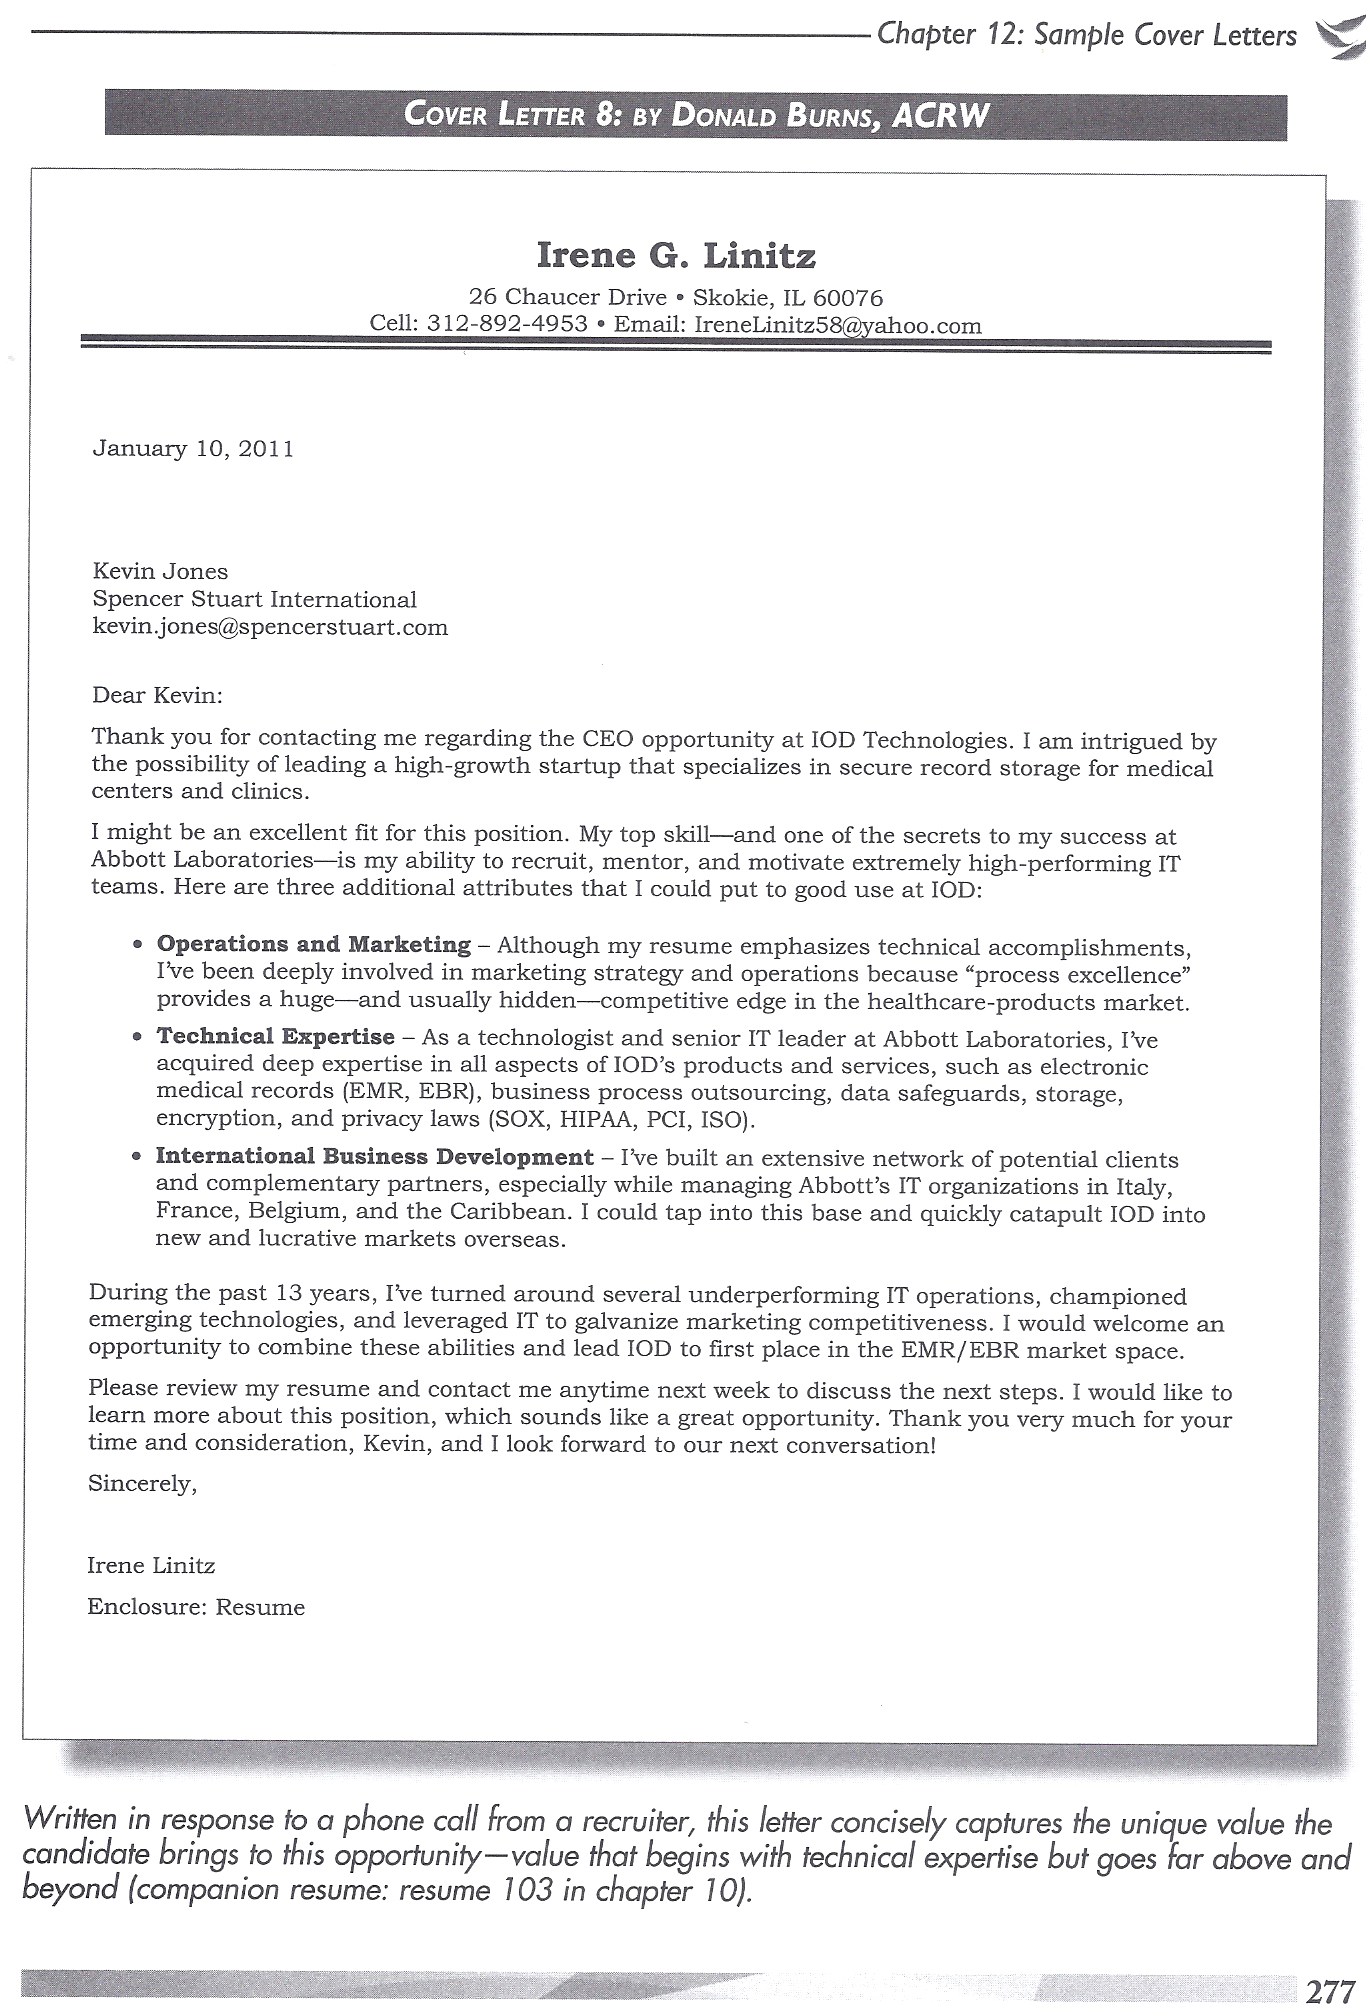 coverletter - Examples Of Cover Letters Generally